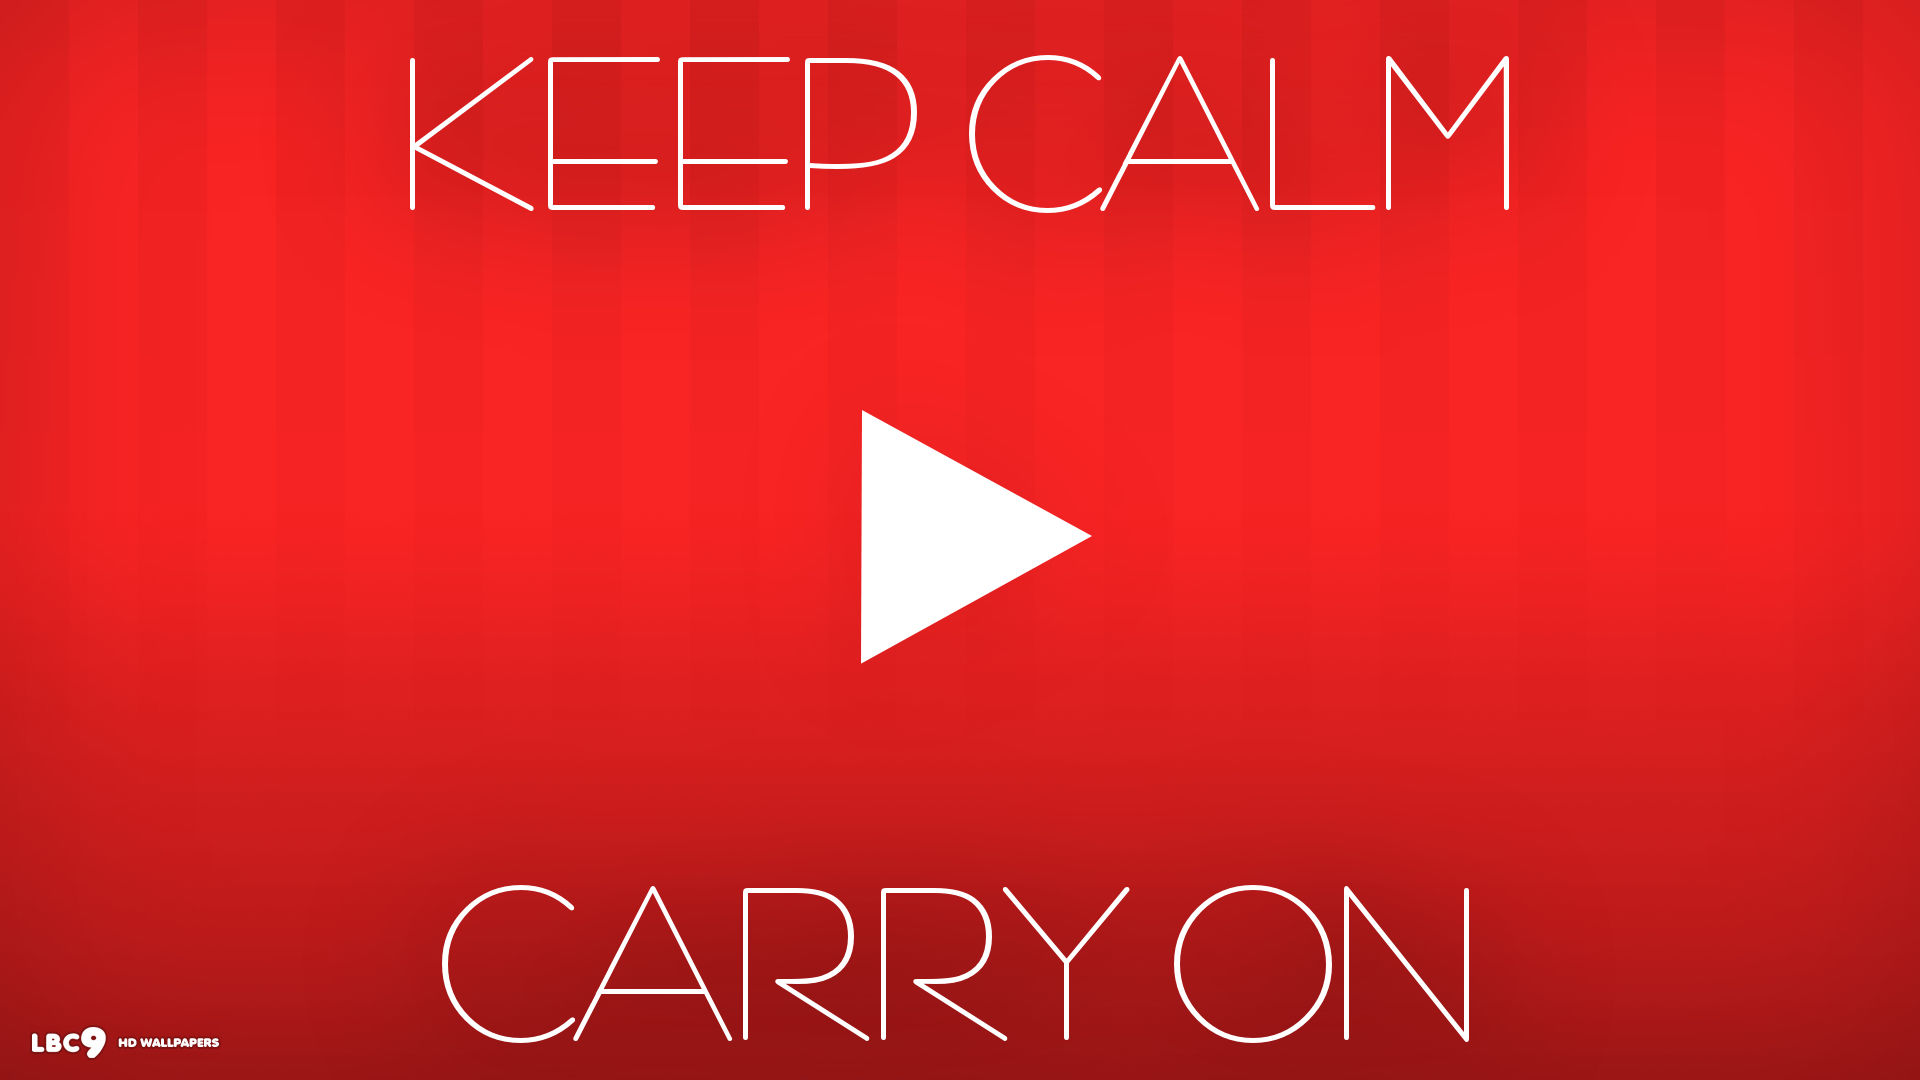 keep calm carry on version 2 1920x1080 wallpaper